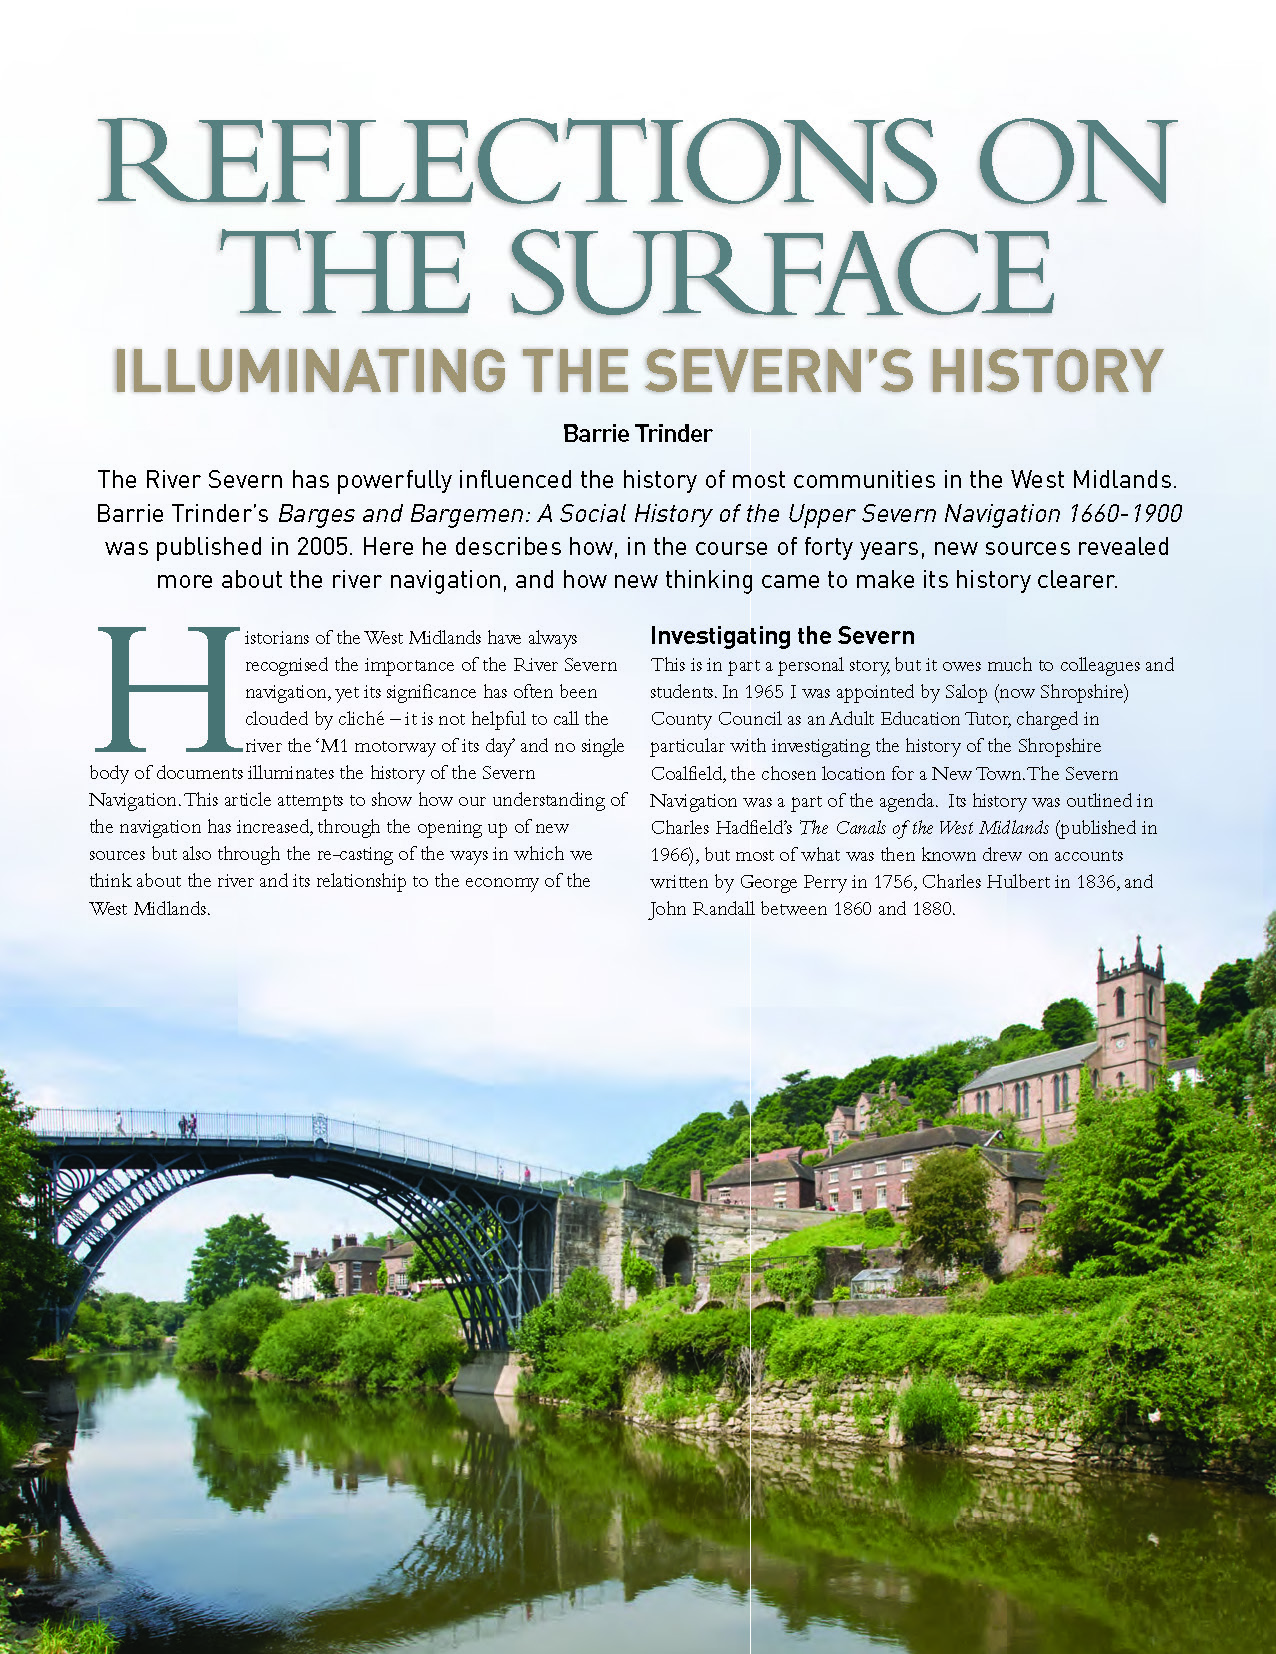 Reflections on the Surface: Illuminating the River Severns history